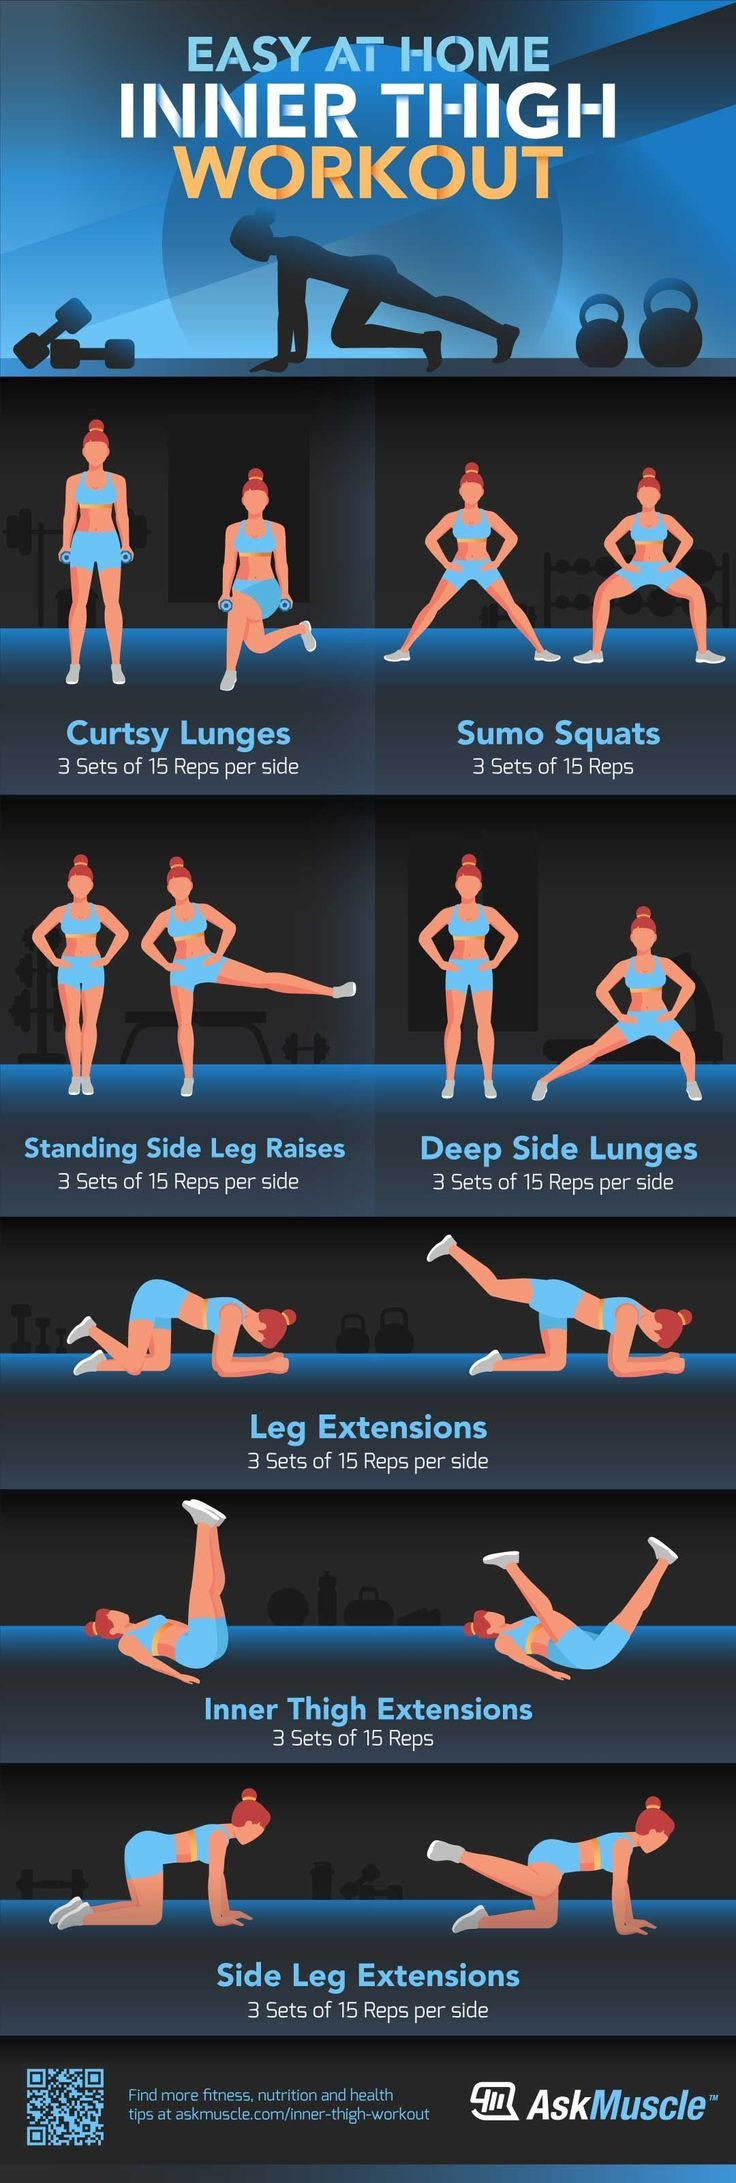 The Best Inner Thigh Workout Routine to Do at Home Inner